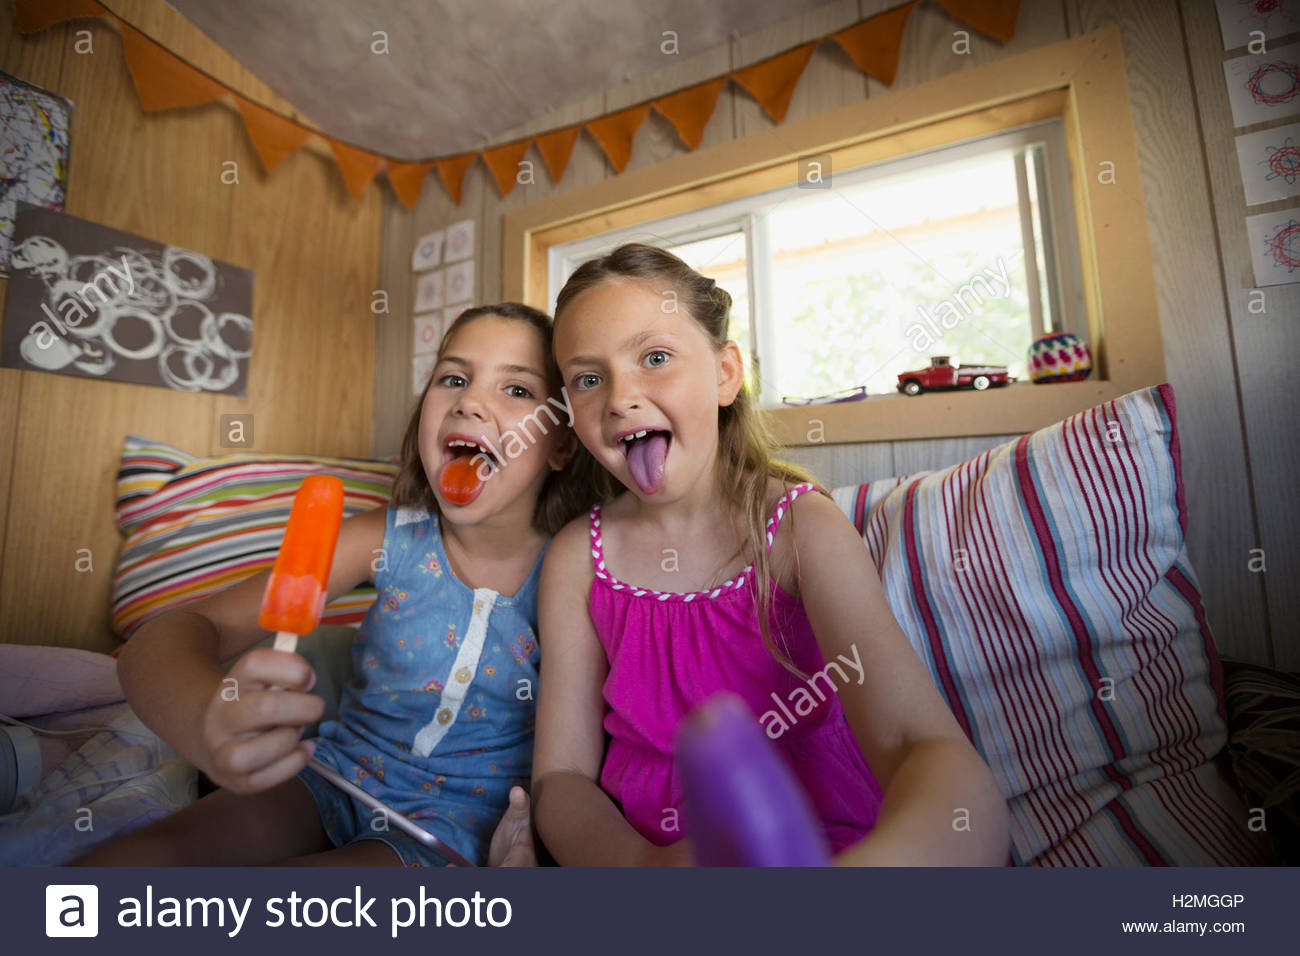 Portrait girls showing purple and orange tongues from flavored ice in treehouse - Stock Image